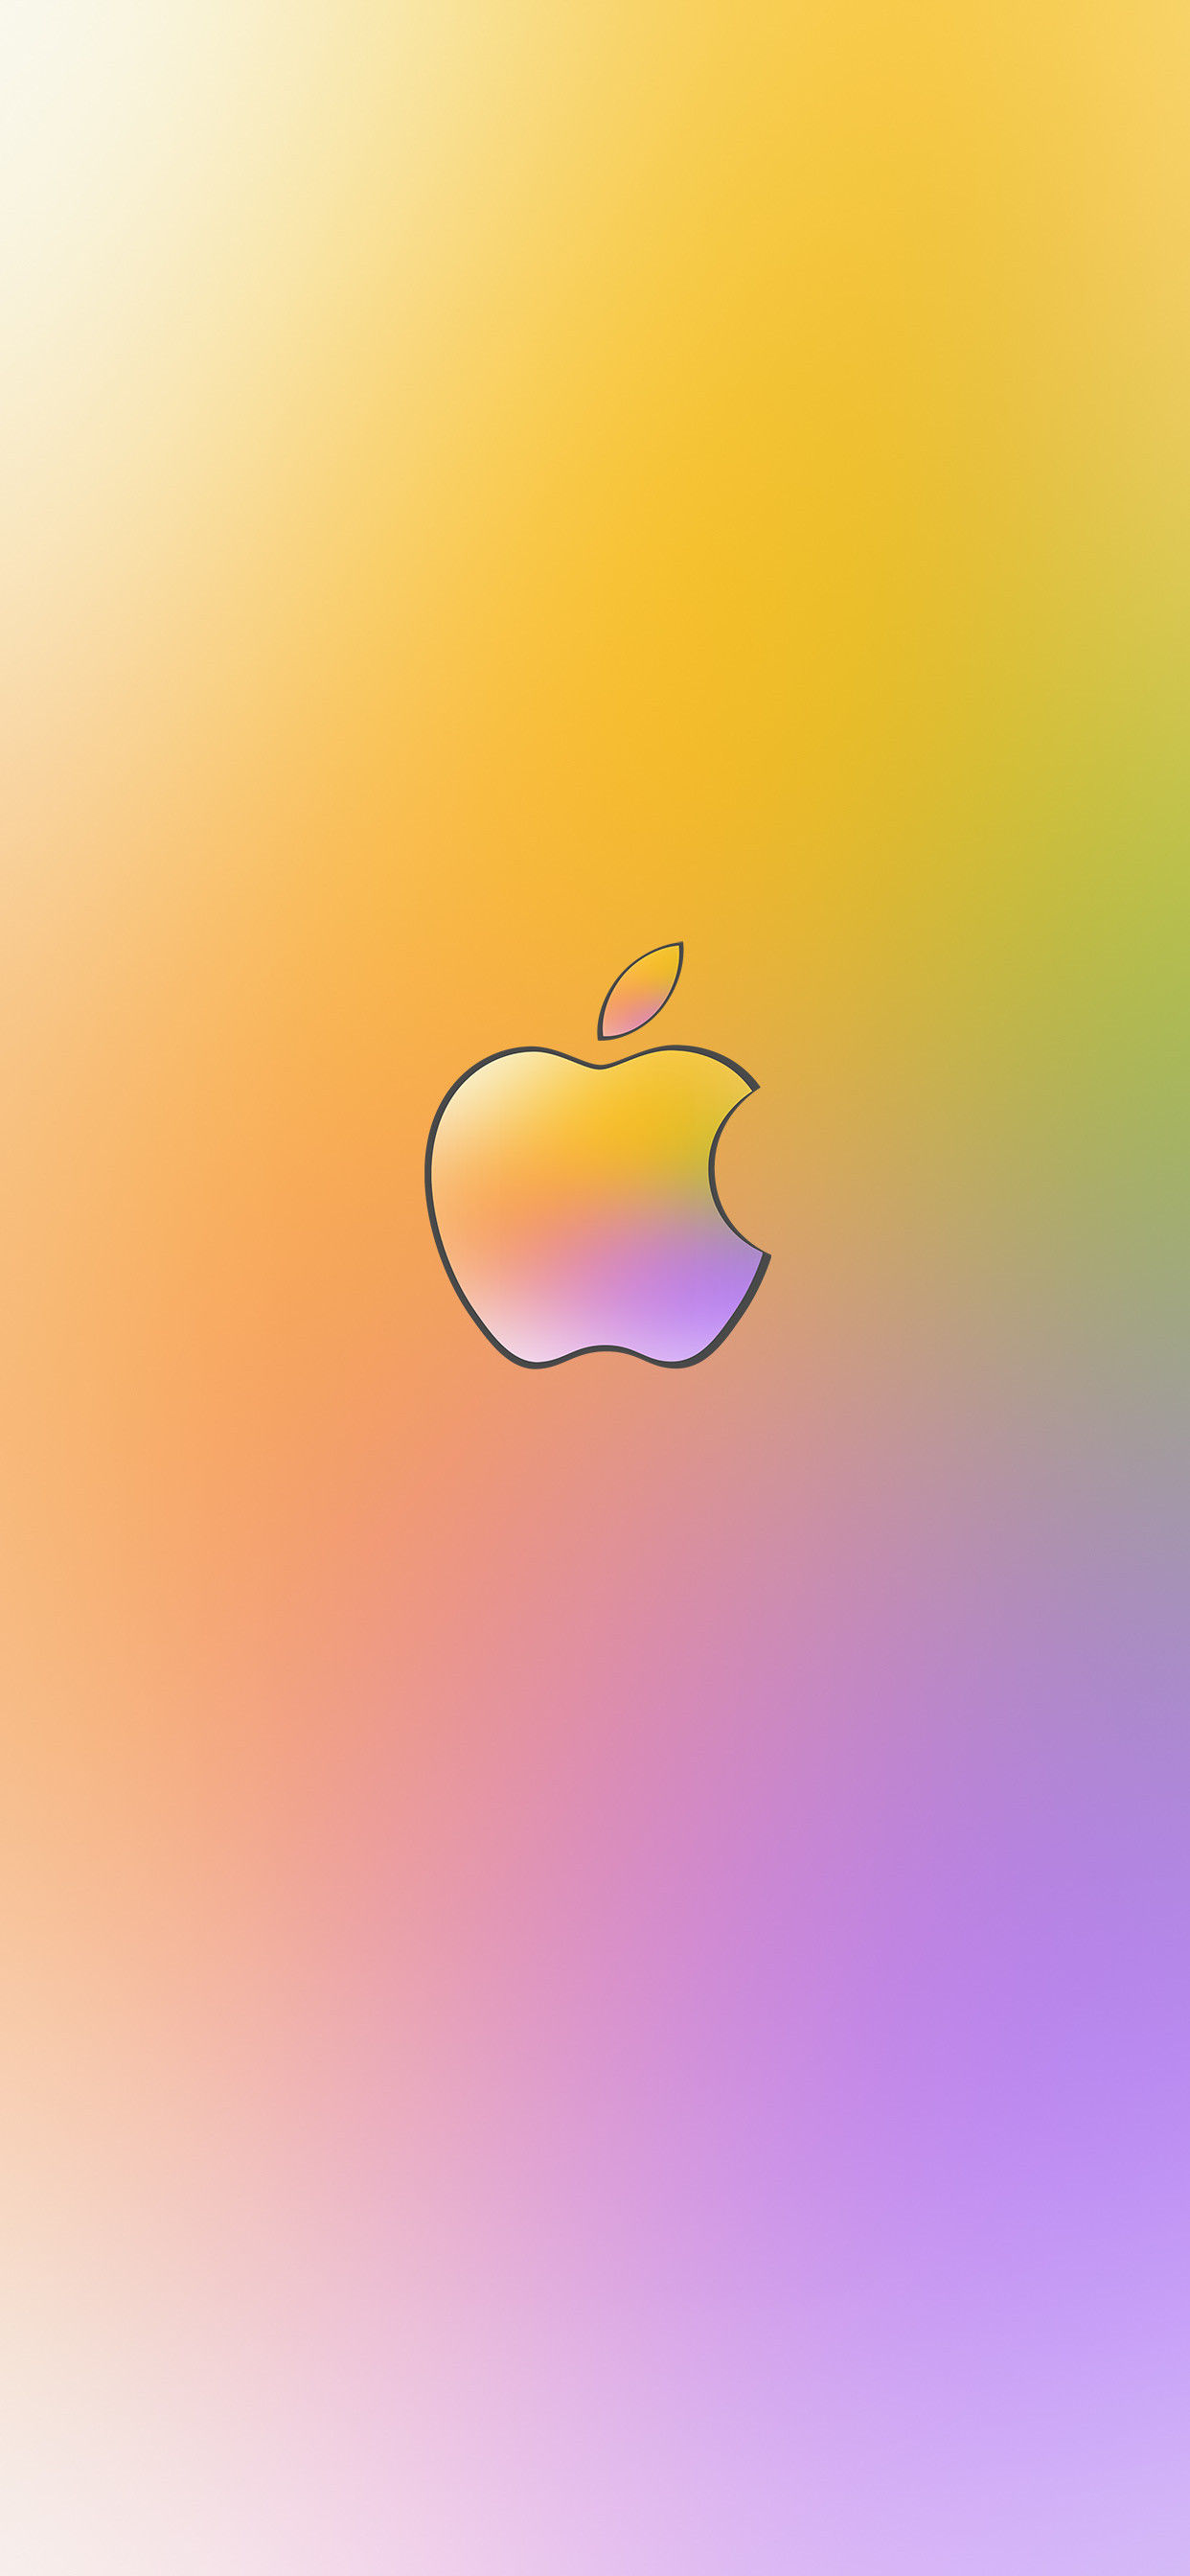 Apple Card Wallpapers For Iphone Ipad And Desktop